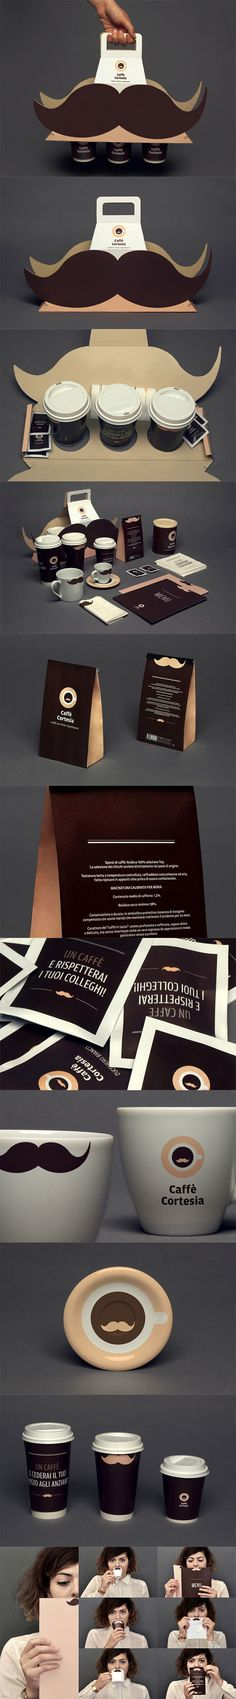 @Packaging of the World: Creative Package Design Archive and Gallery: Caffè Cortesia